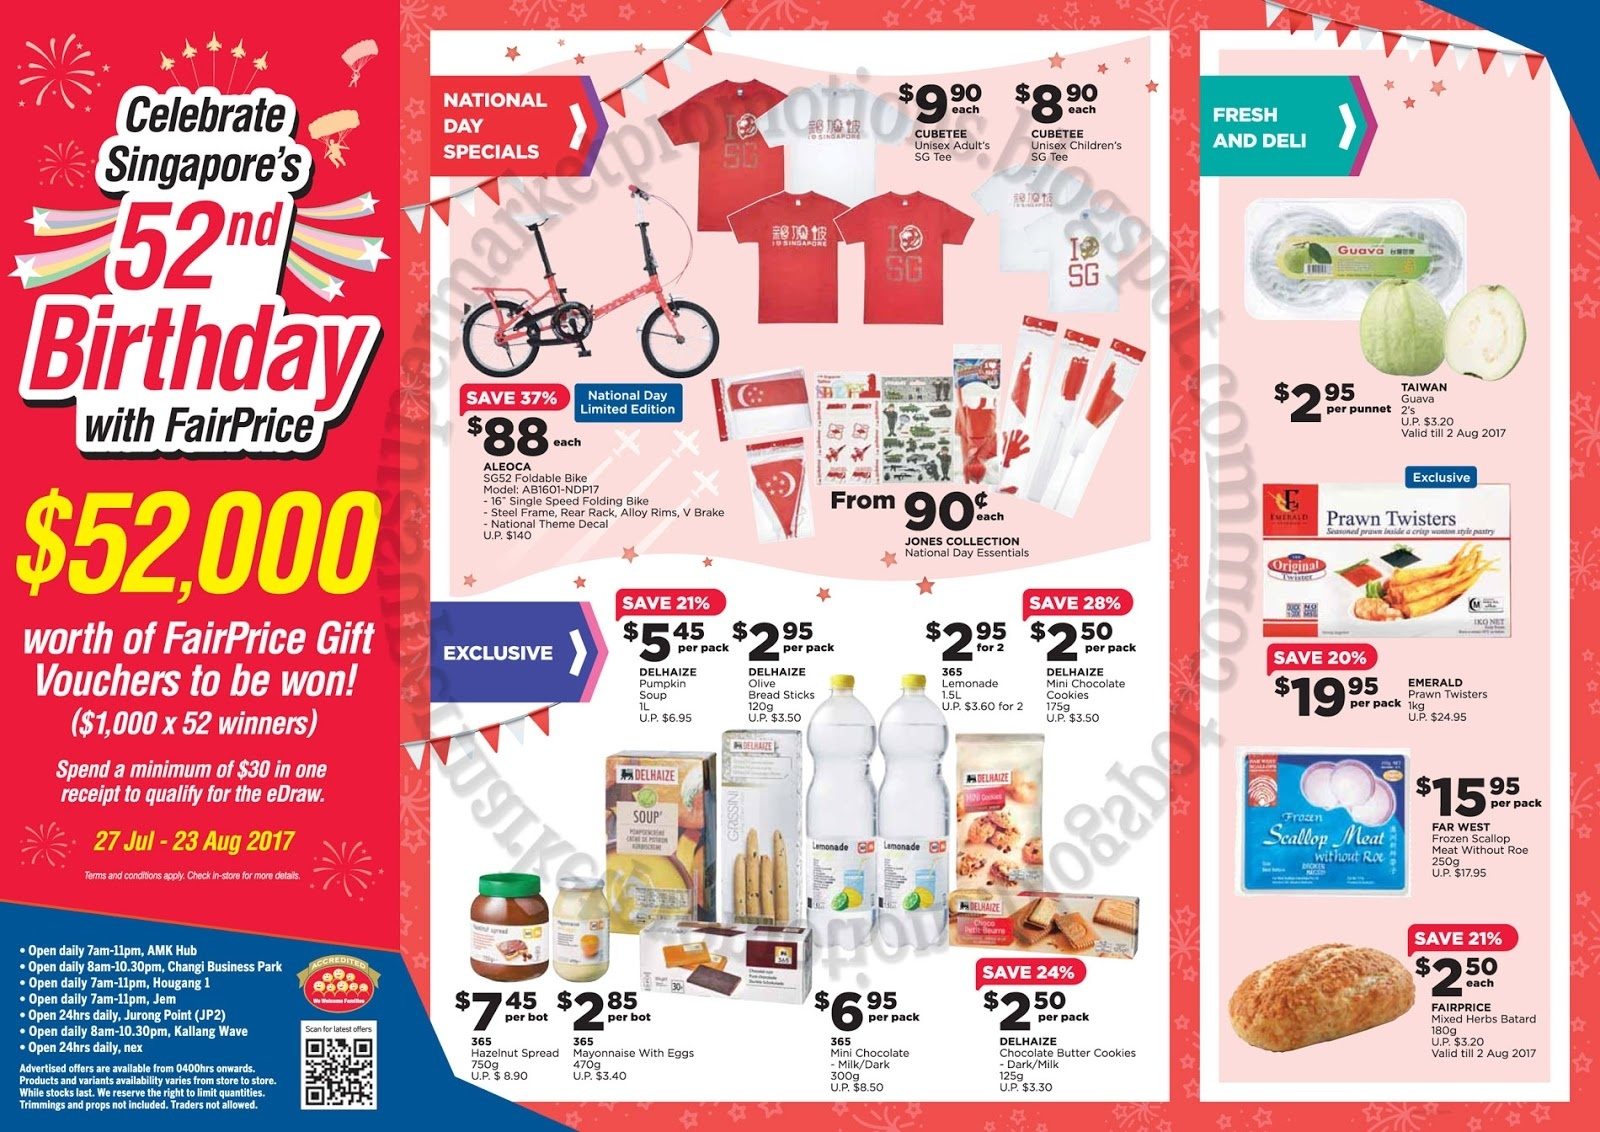 Ntuc Fairprice Xtra National Day Promotion 27 July - 09 August 2017  Images National Day August 23